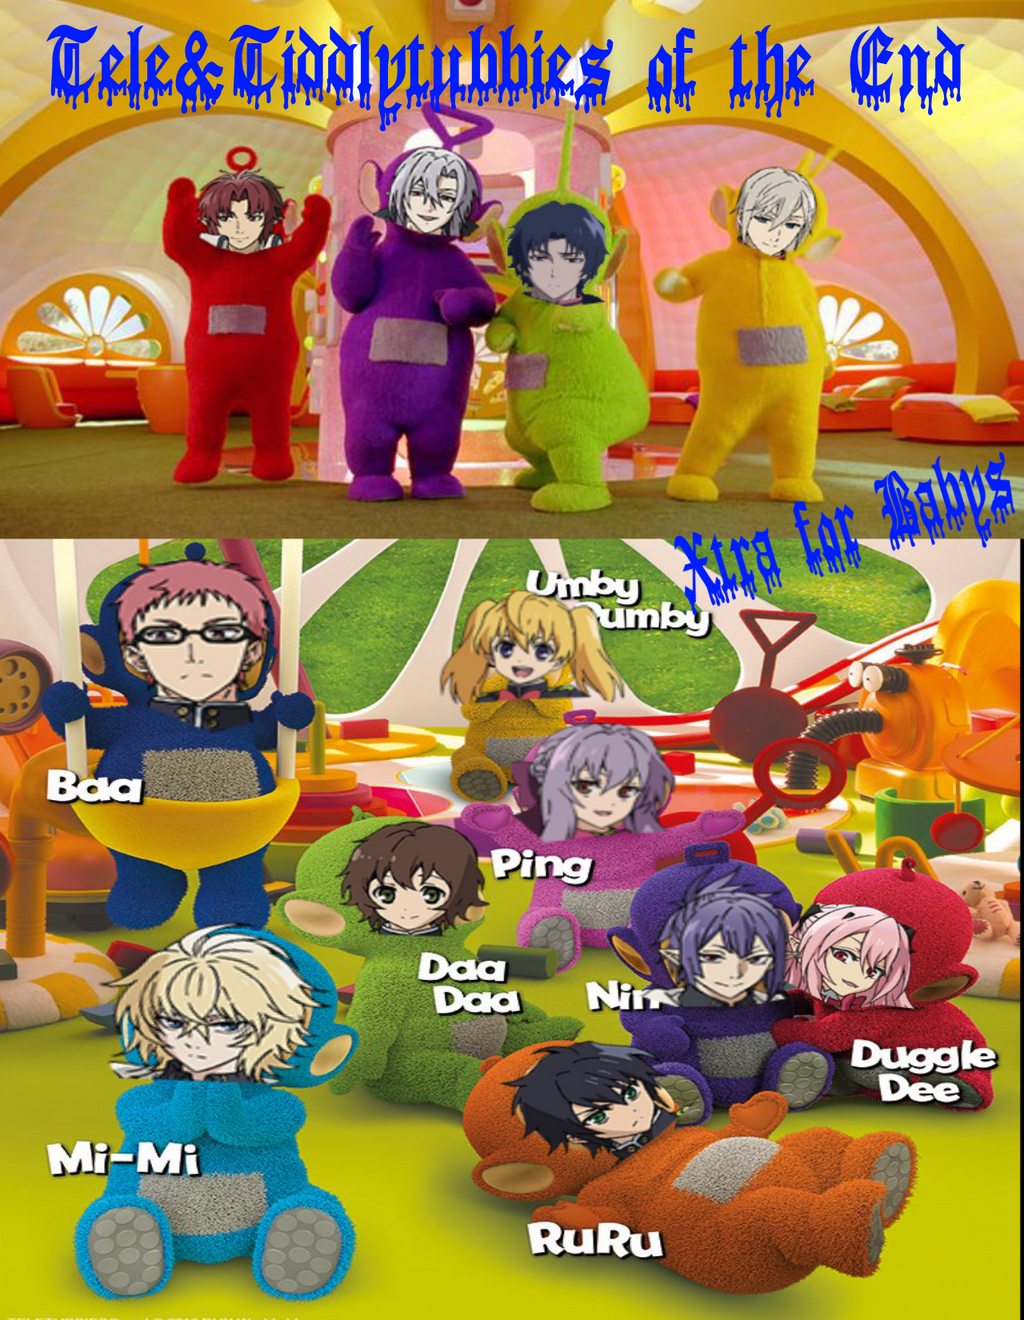 Teletubbies of the end MEME of Seraph of the end by Sephikuji